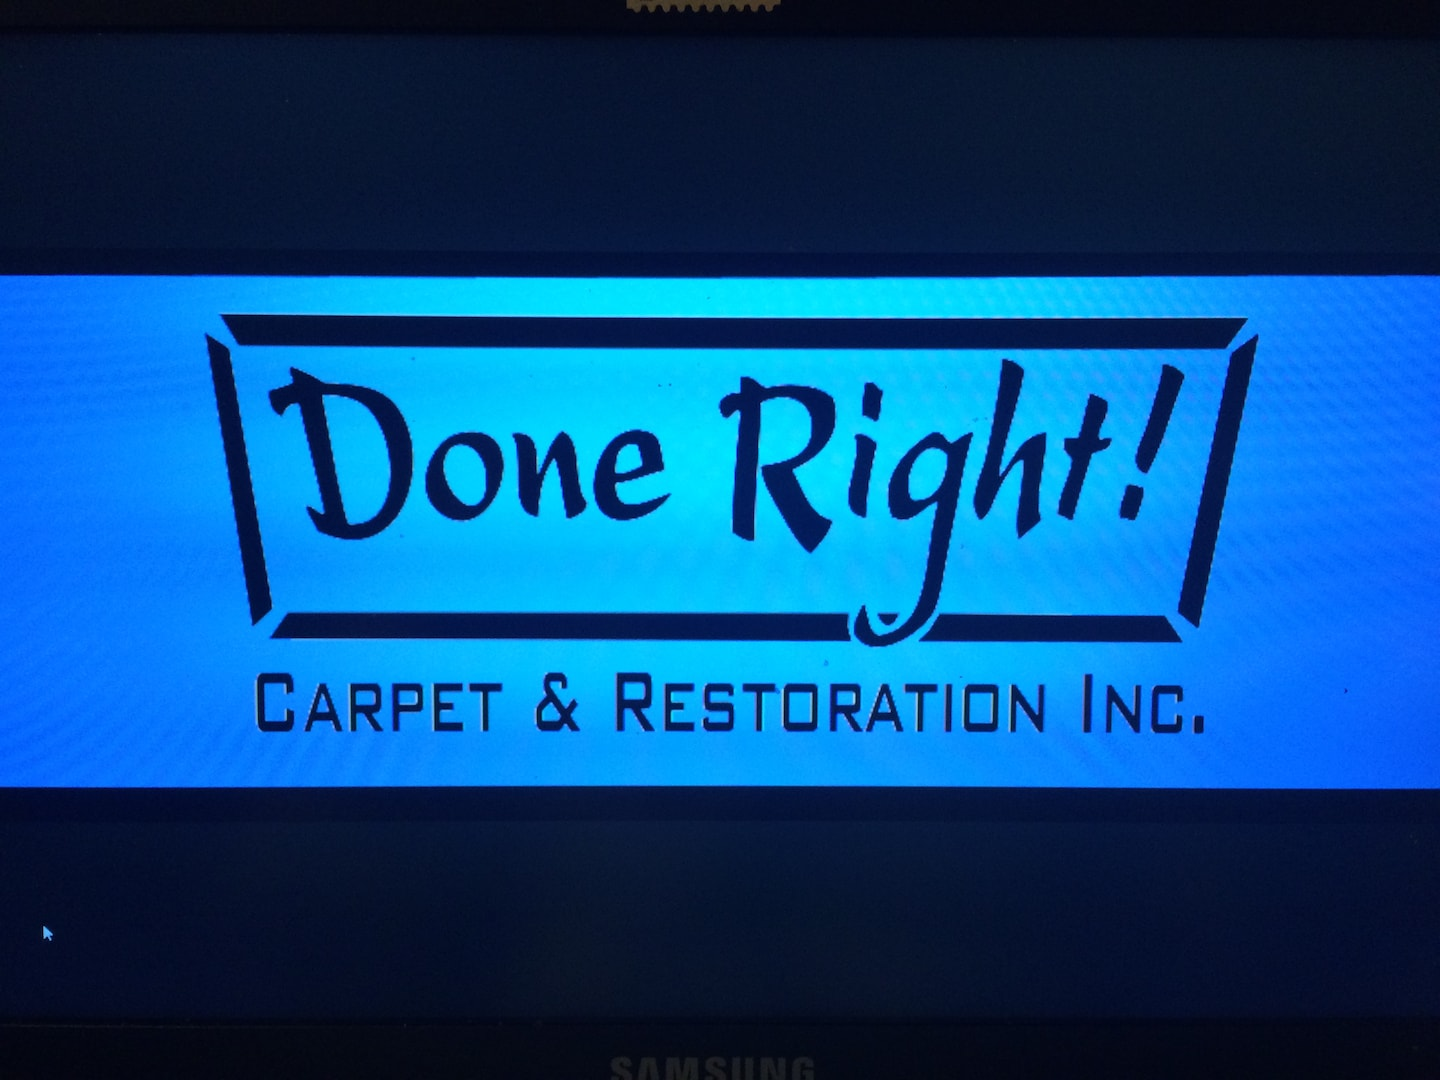 Done Right Carpet & Restoration